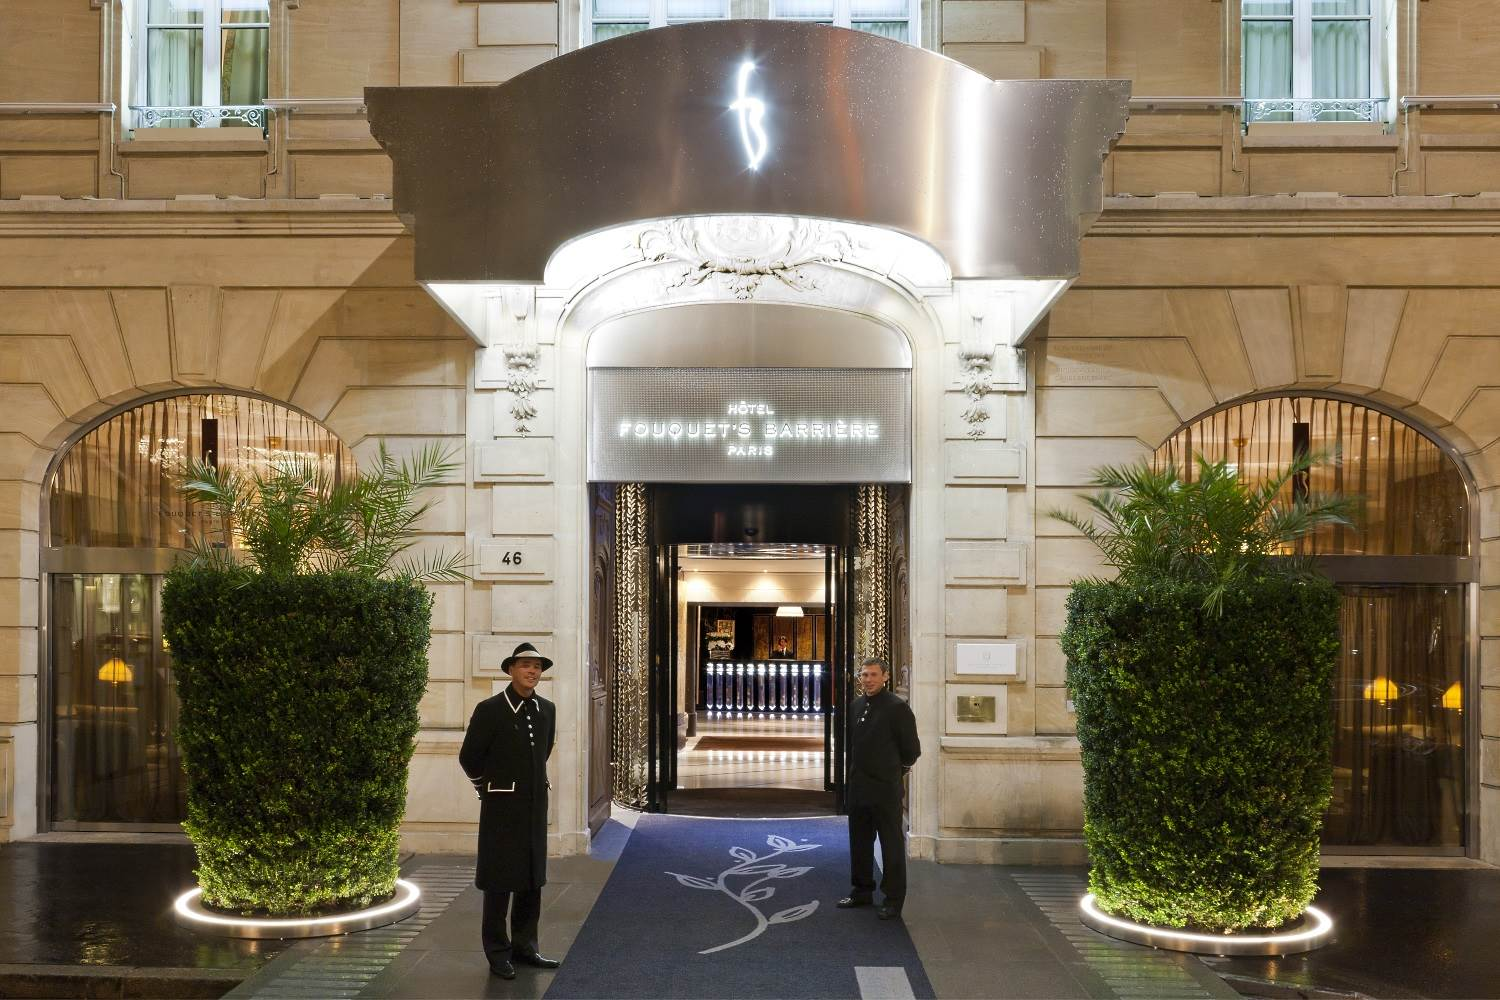 Fouquet 39 s barri re paris luxury hotel in paris france for Hotel le secret paris